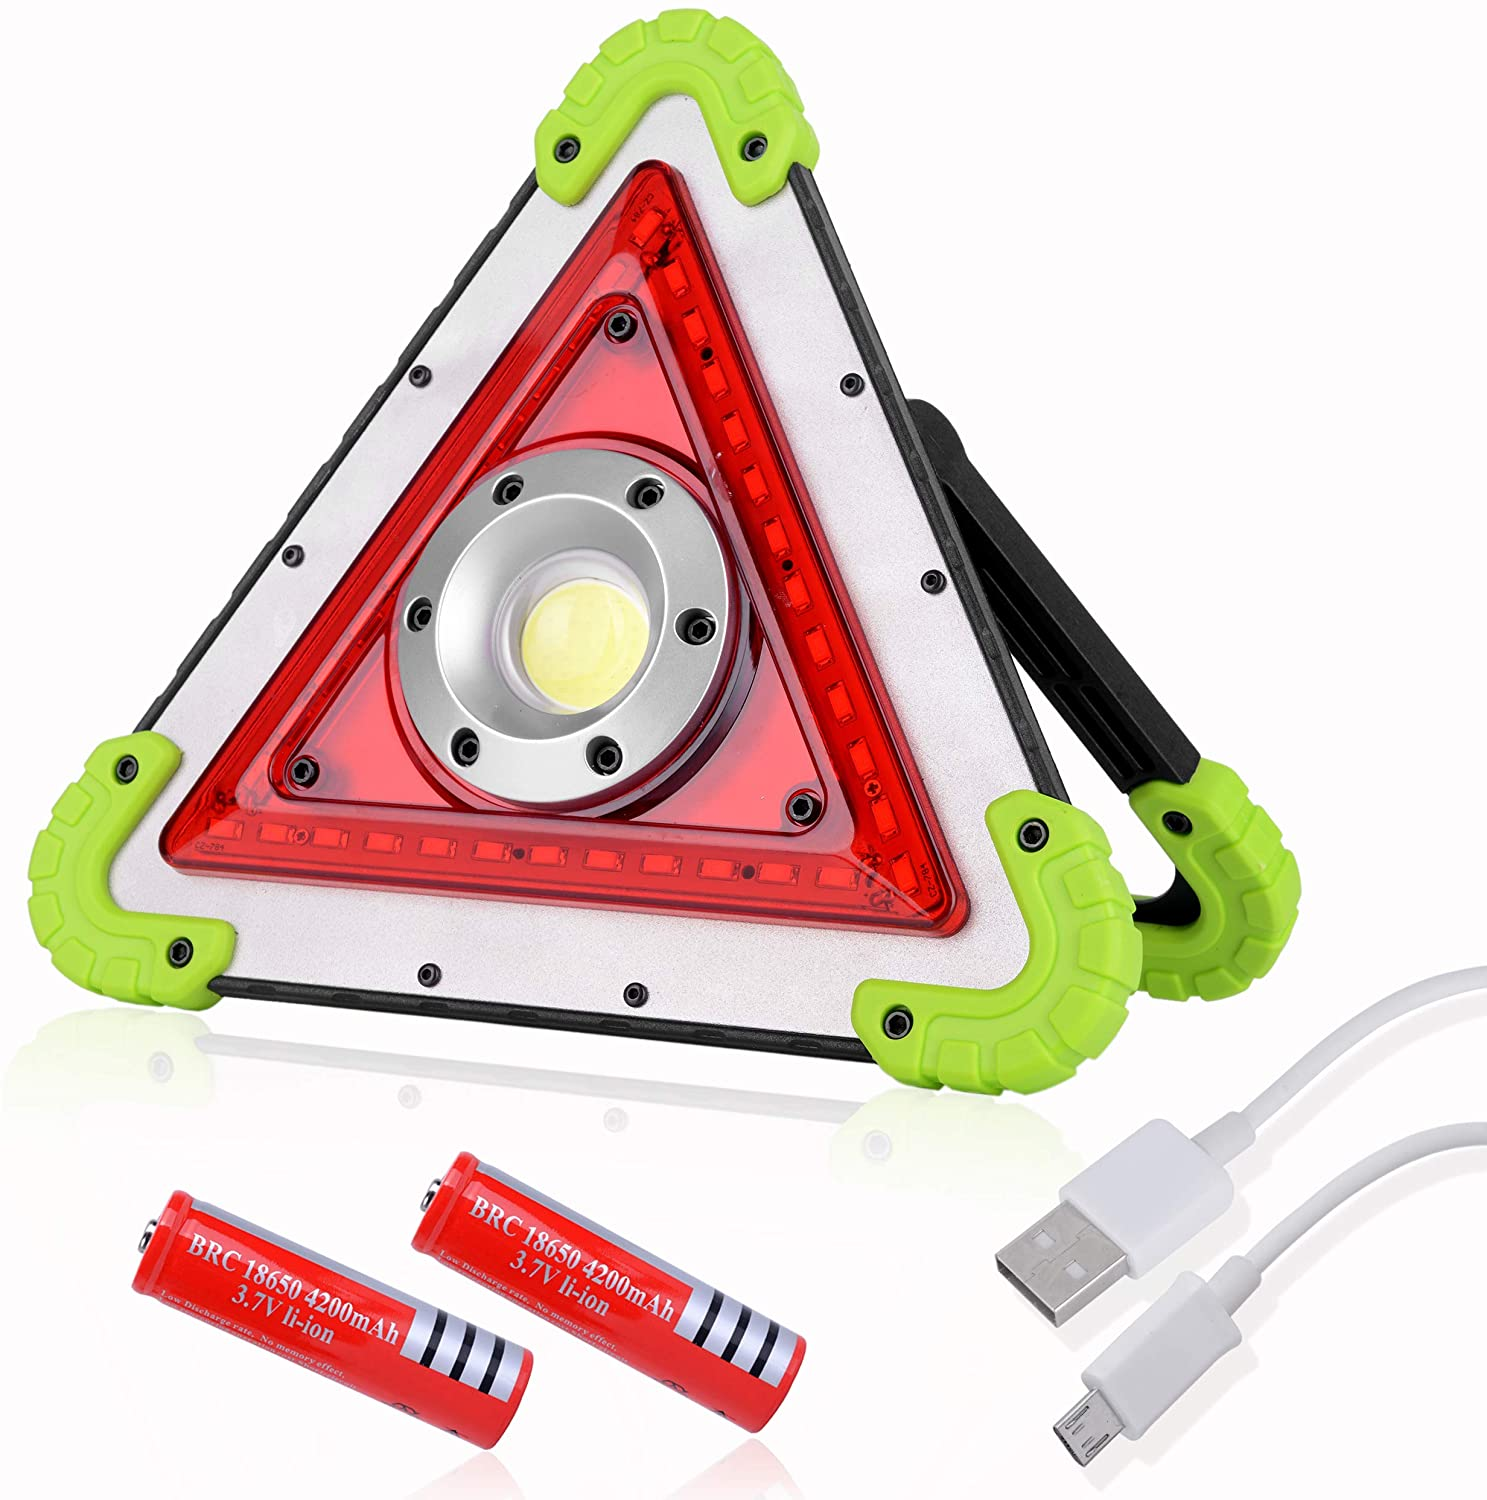 OTYTY COB 30W 2000LM COB LED Work Light, Rechargeable Portable Waterproof LED Flood Lights for Outdoor Camping Hiking Emergency Car Repairing, Job Site Lighting and Roadside Assistance (W837 Green)